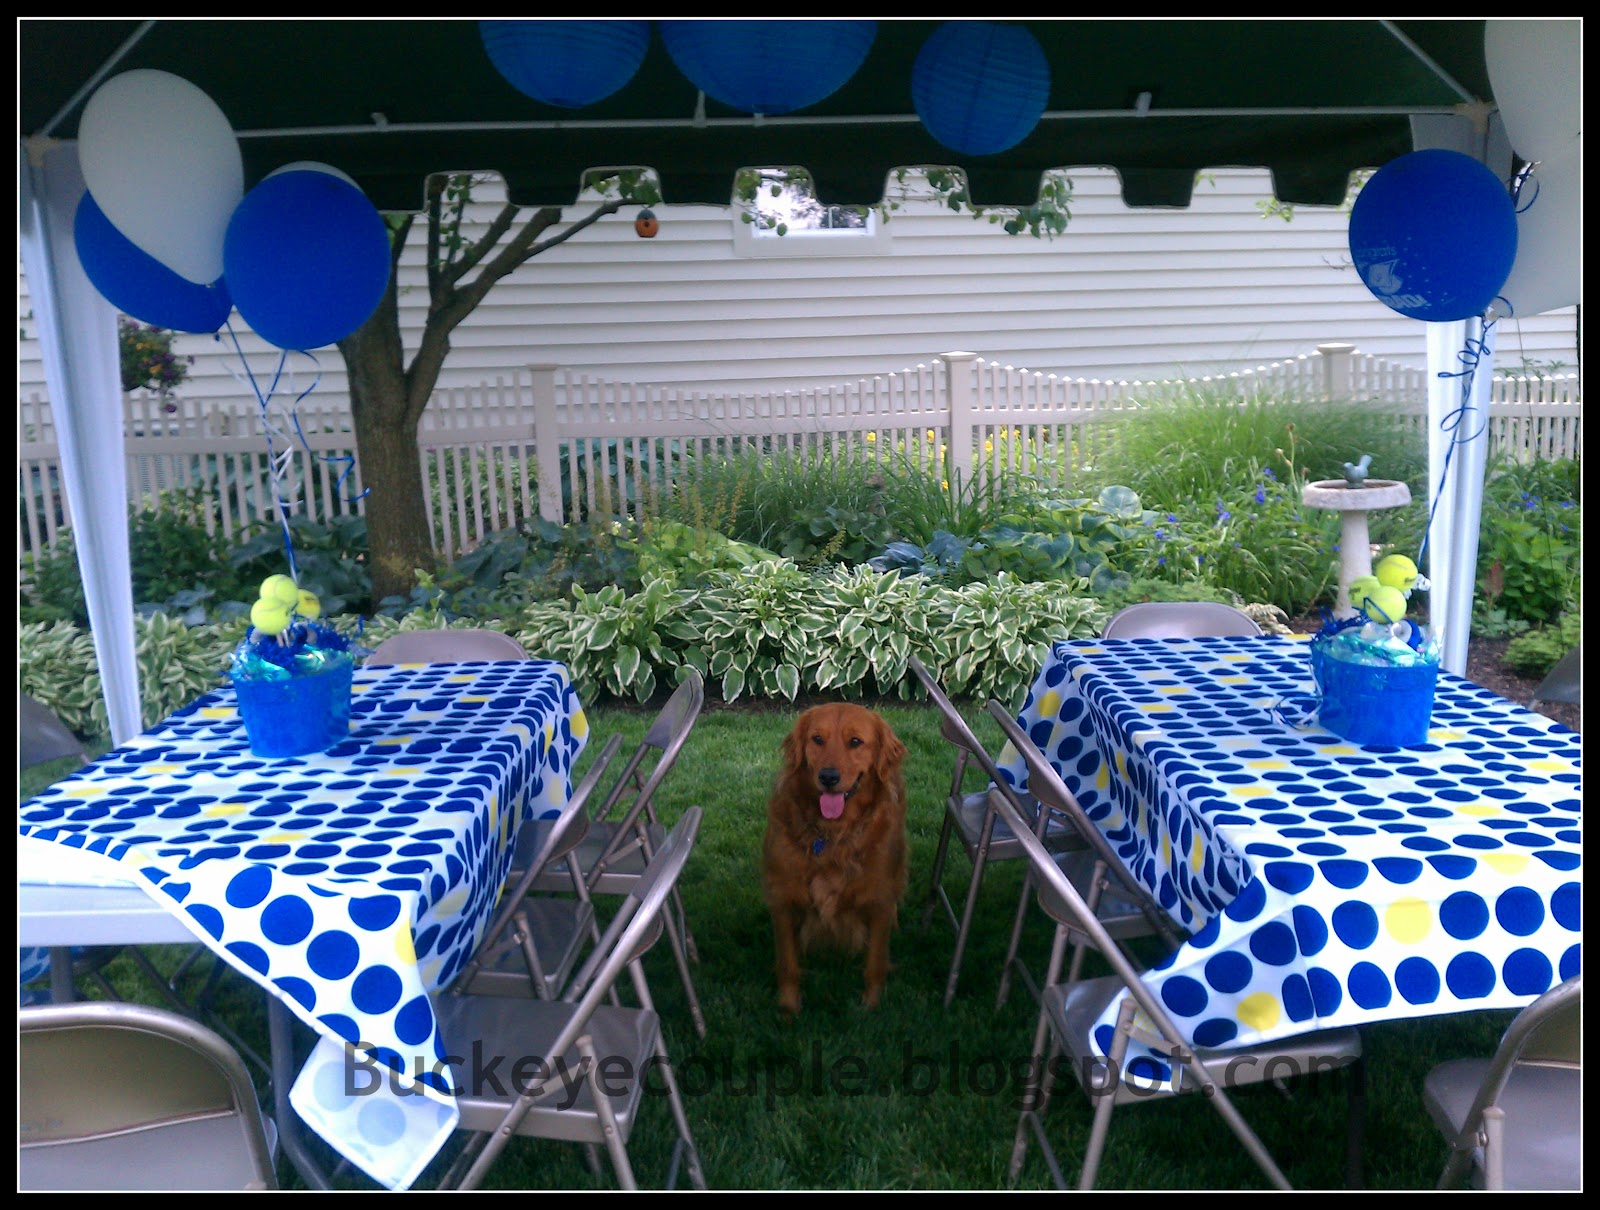 Centerpieces For Outdoor Graduation Party : Izzy, their golden, is obsessed with tennisballs She was waiting by